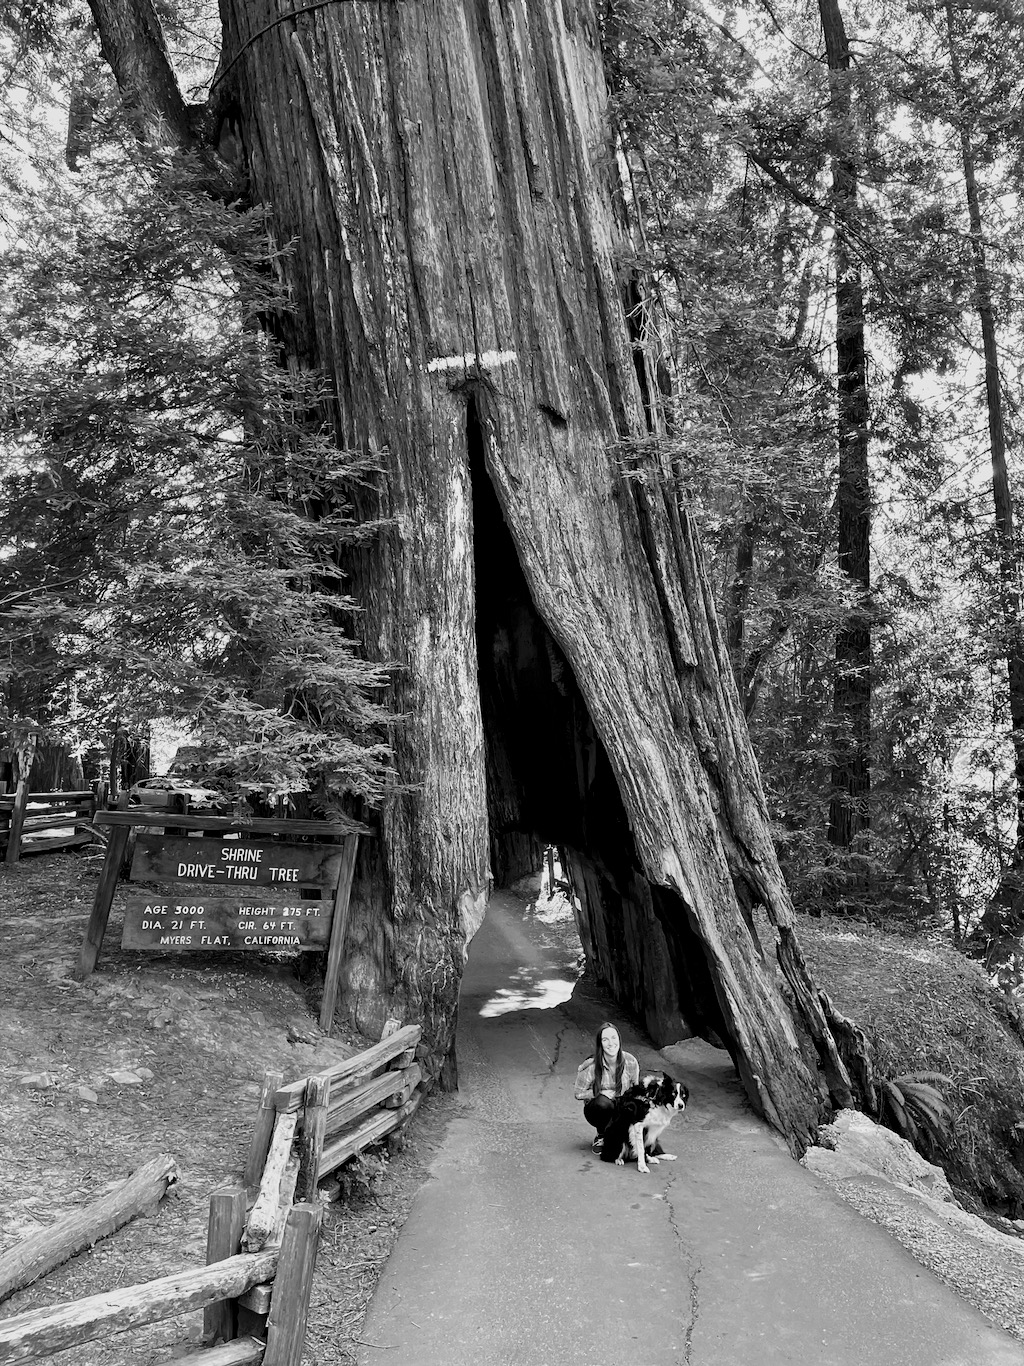 The famous drive-through redwood. I didn't realize it was a dead tree (the end of the stump is just out of view) held up by wires. Also, I don't think most modern cars can fit. We had to abort and walk through.